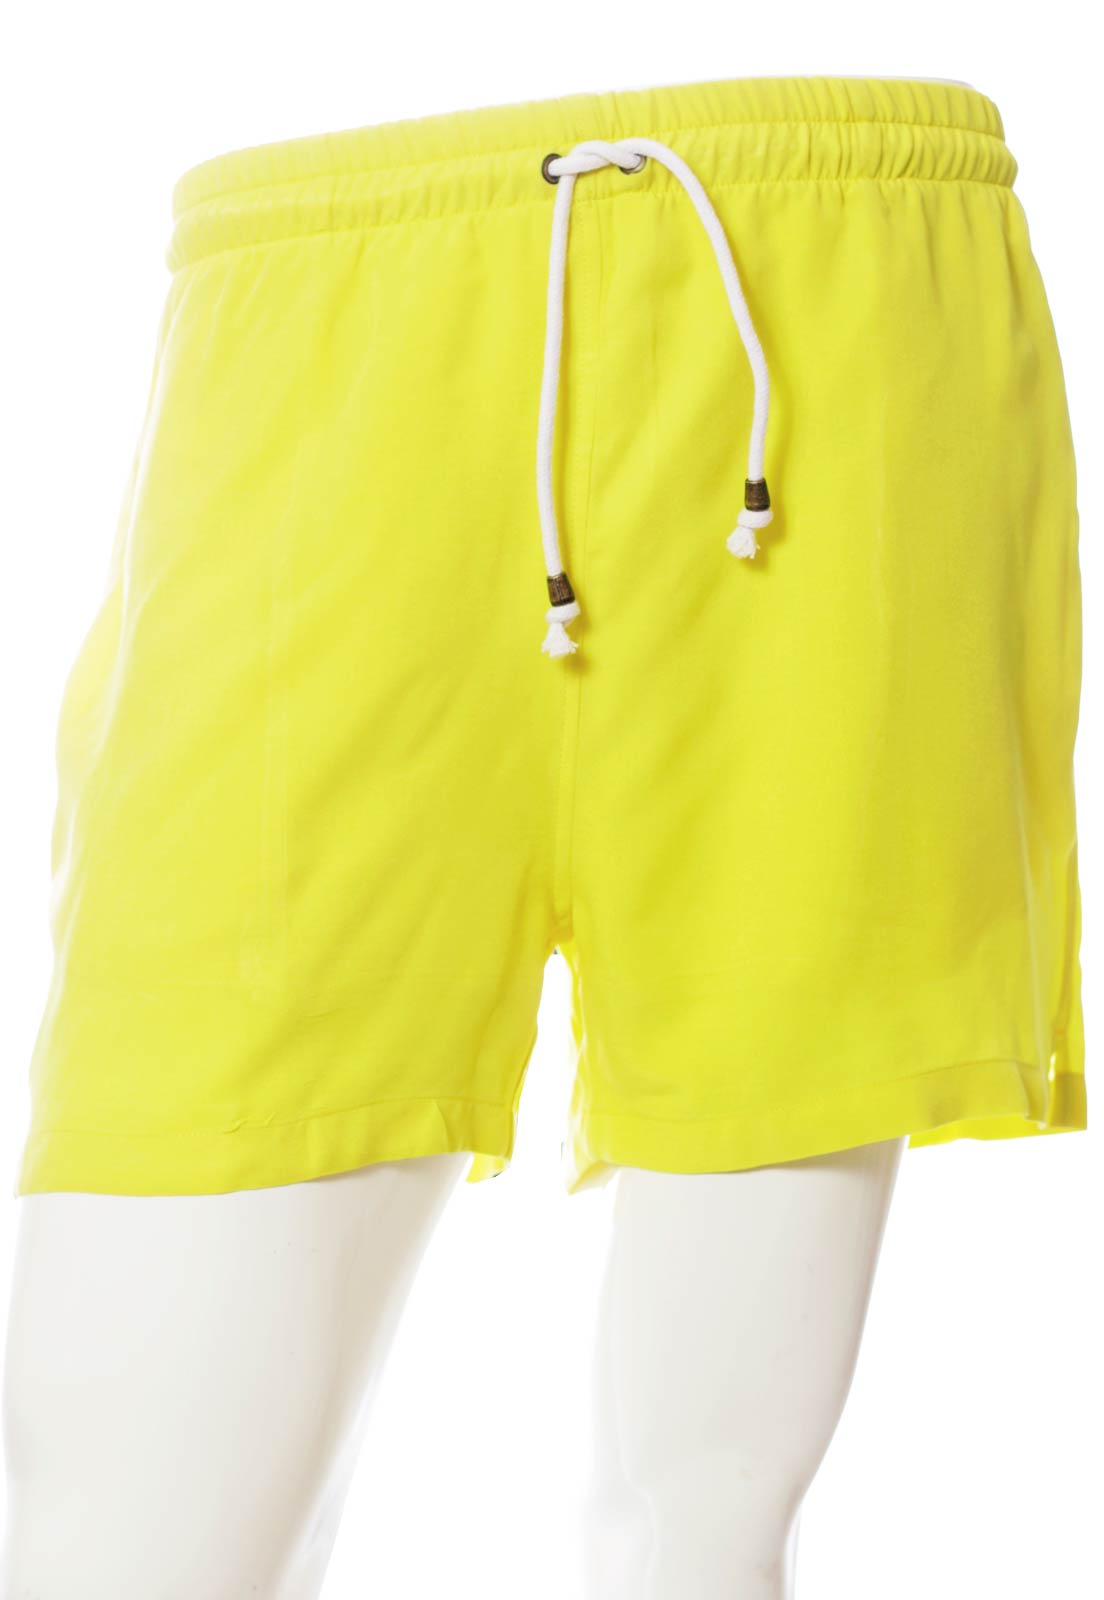 Shorts Color Blocking Clubber Pop Balada Novela Unissex Amarelo